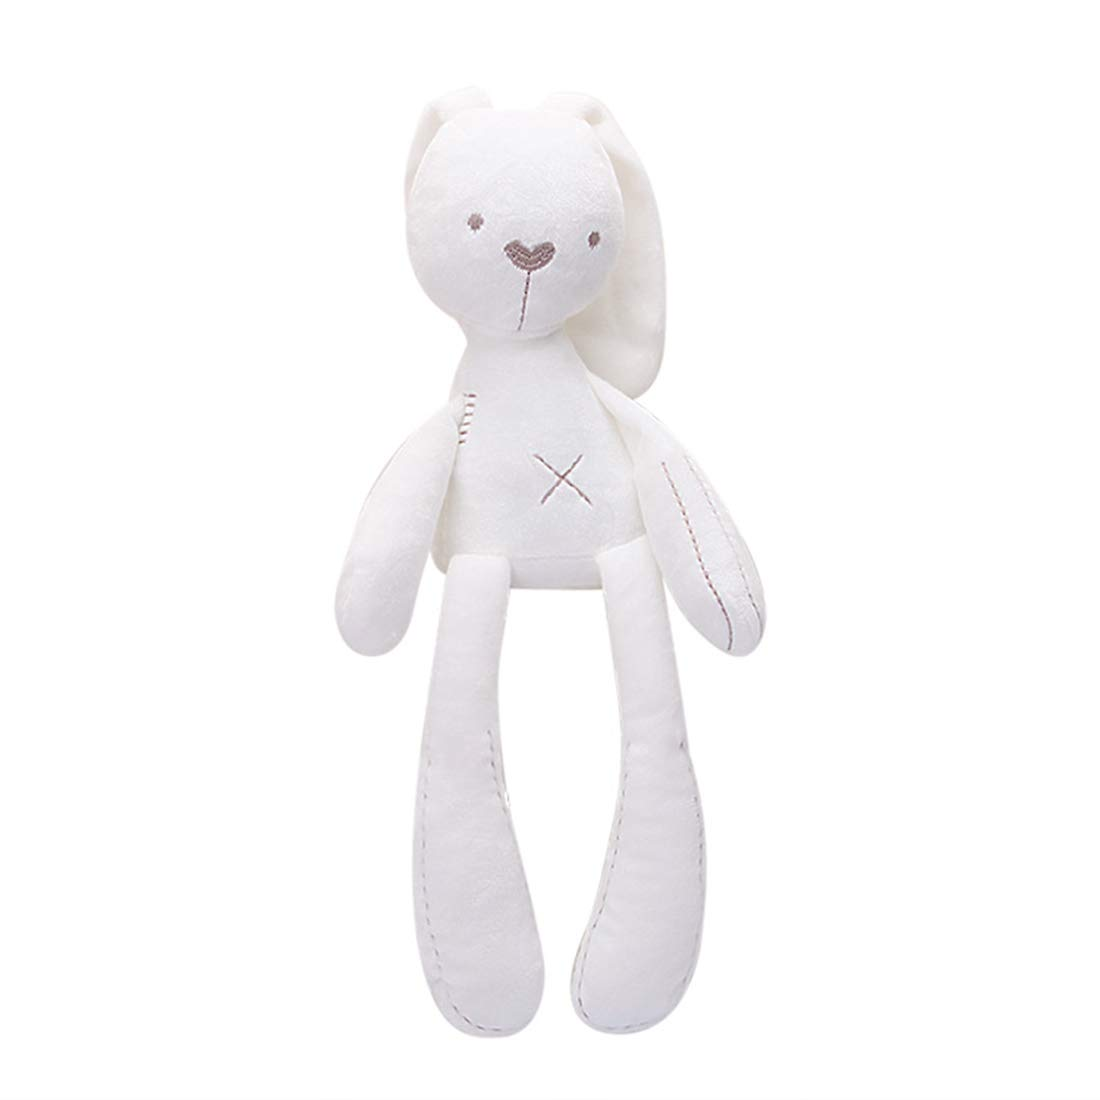 GOOC Kids First Stuffed Animal 15.7 inch | Baby Toys 6 to 12 Months | Soft Snuggle Bunny Baby Toys (Bunny White) by GOOC